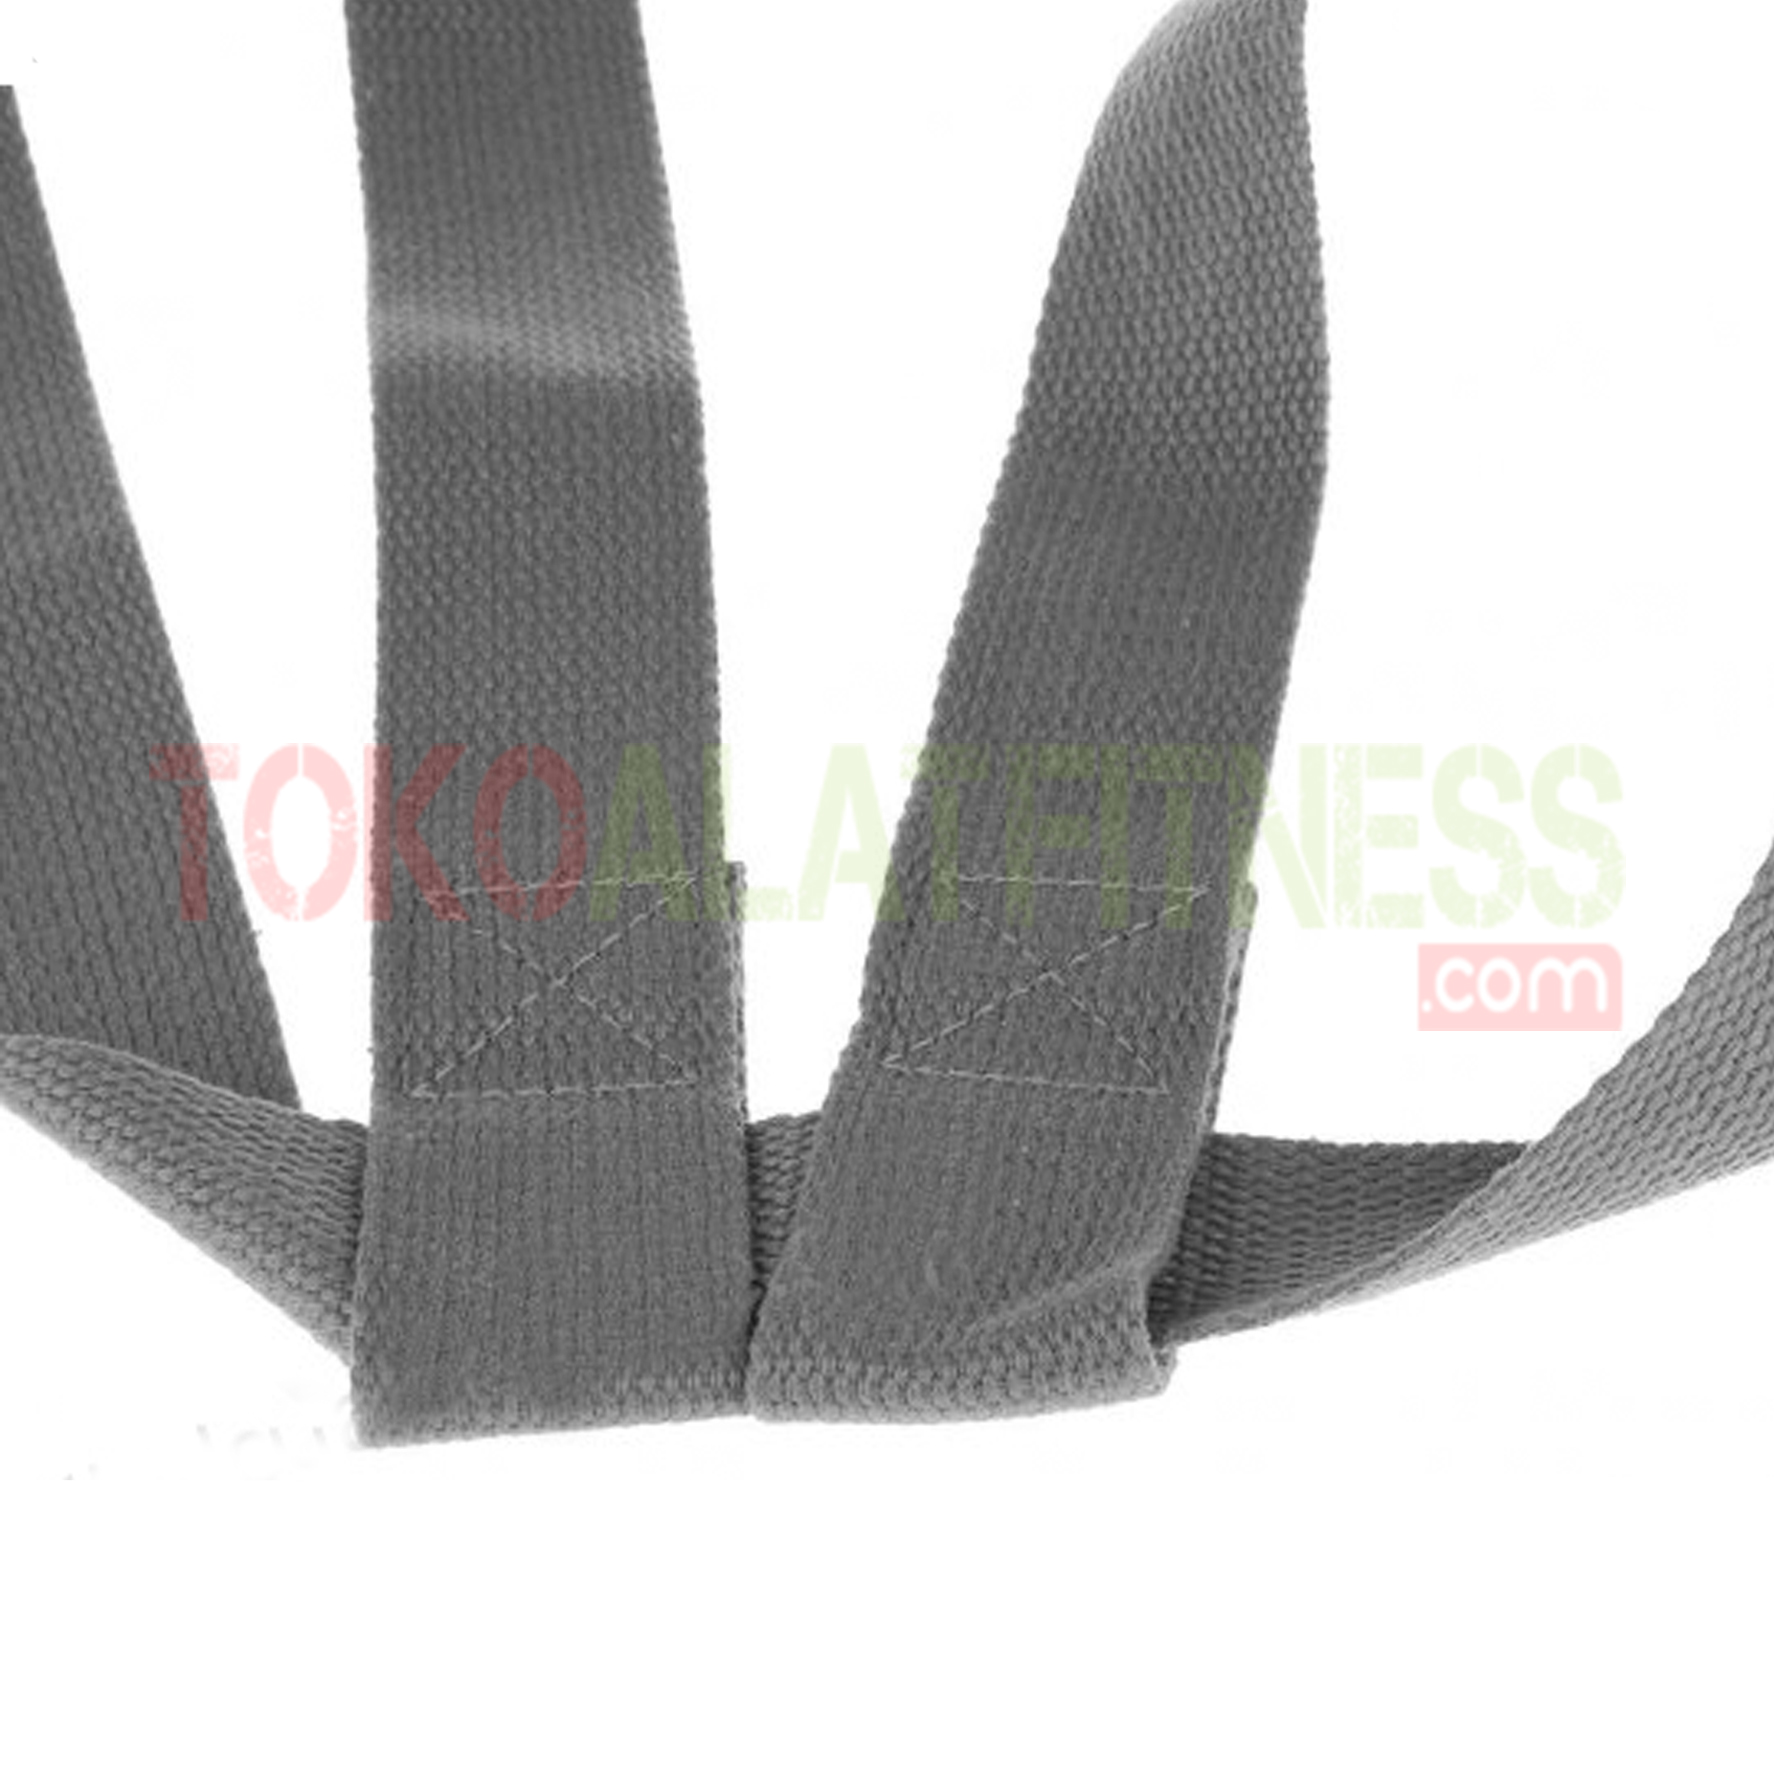 YOGA MAT STRAP GREY 2 WTM - Yoga Mat Strap, Grey Body Gym